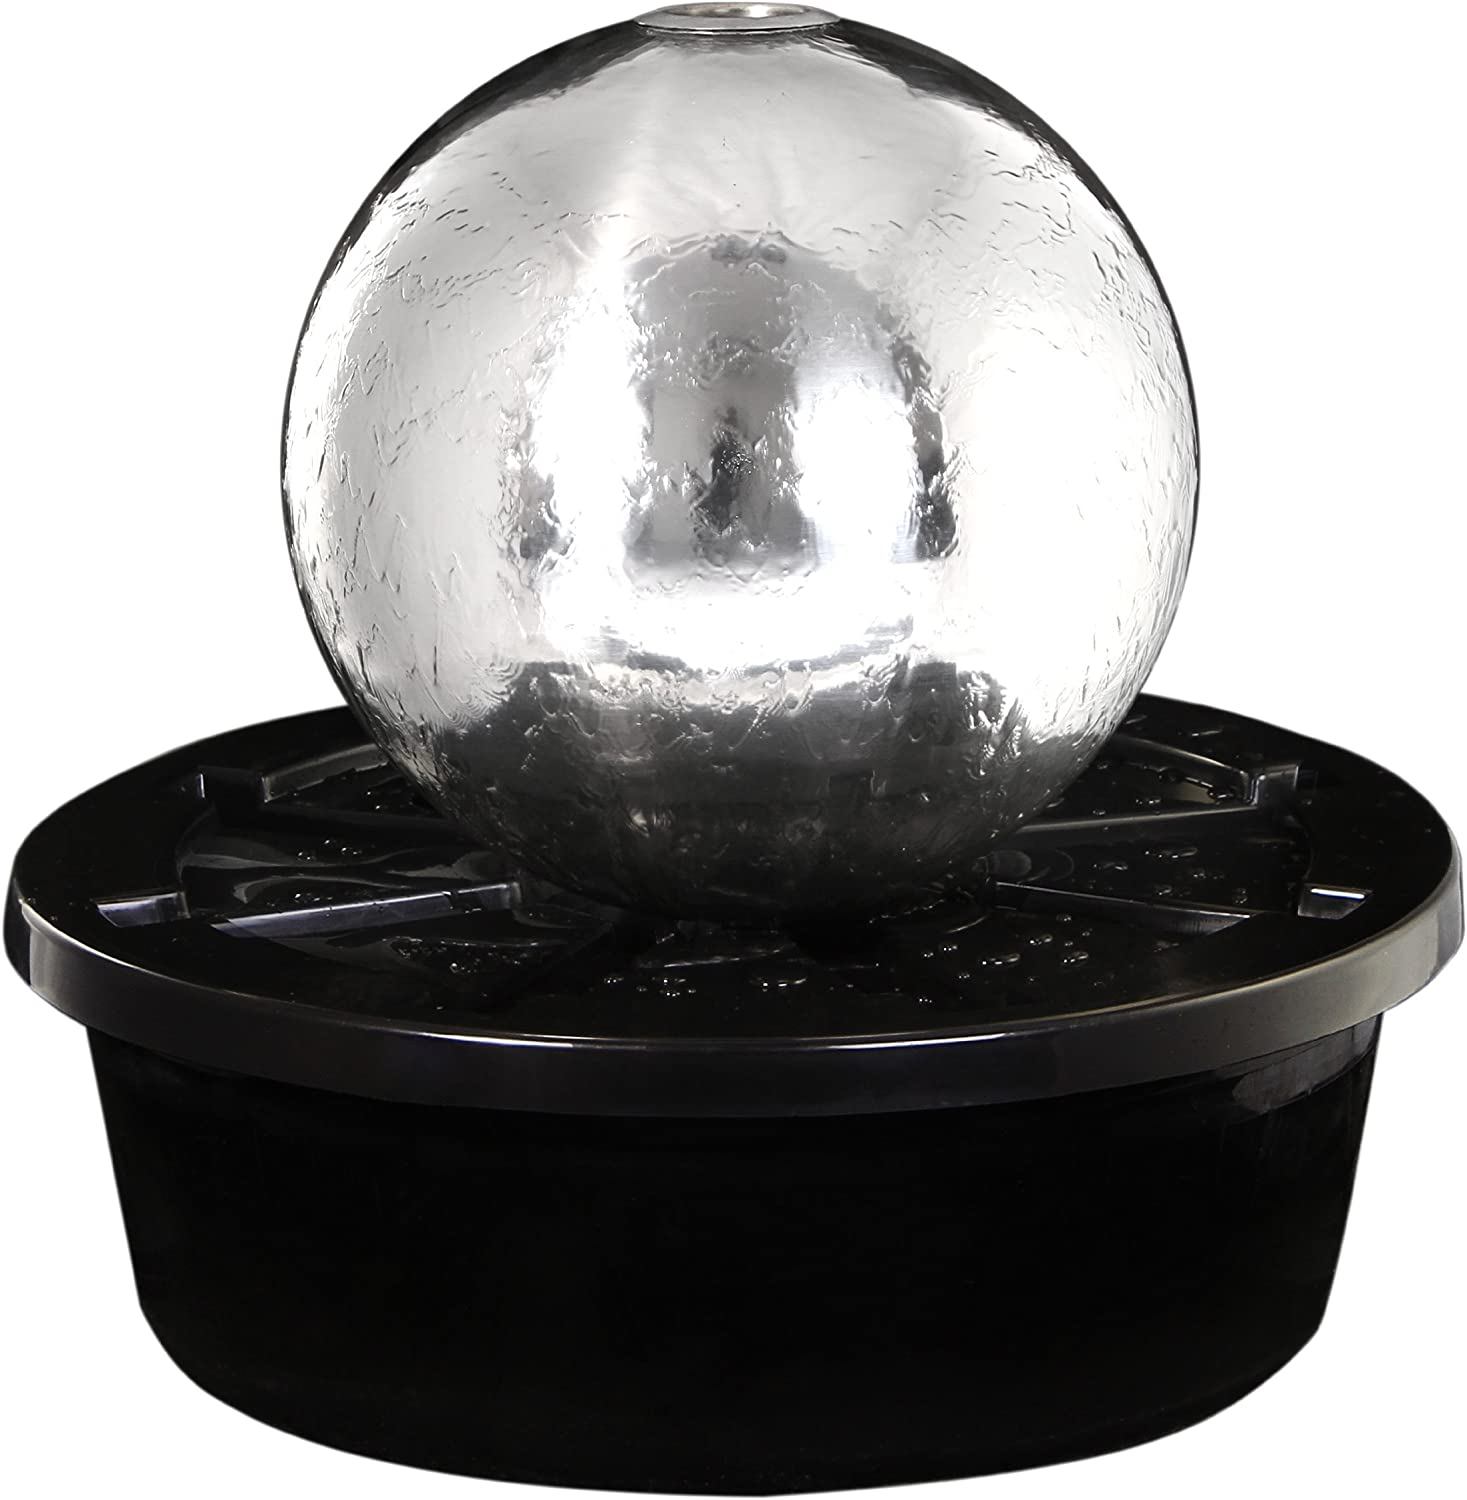 Ambiente Tacana 30cm Stainless Steel Sphere, Fire and Water Feature